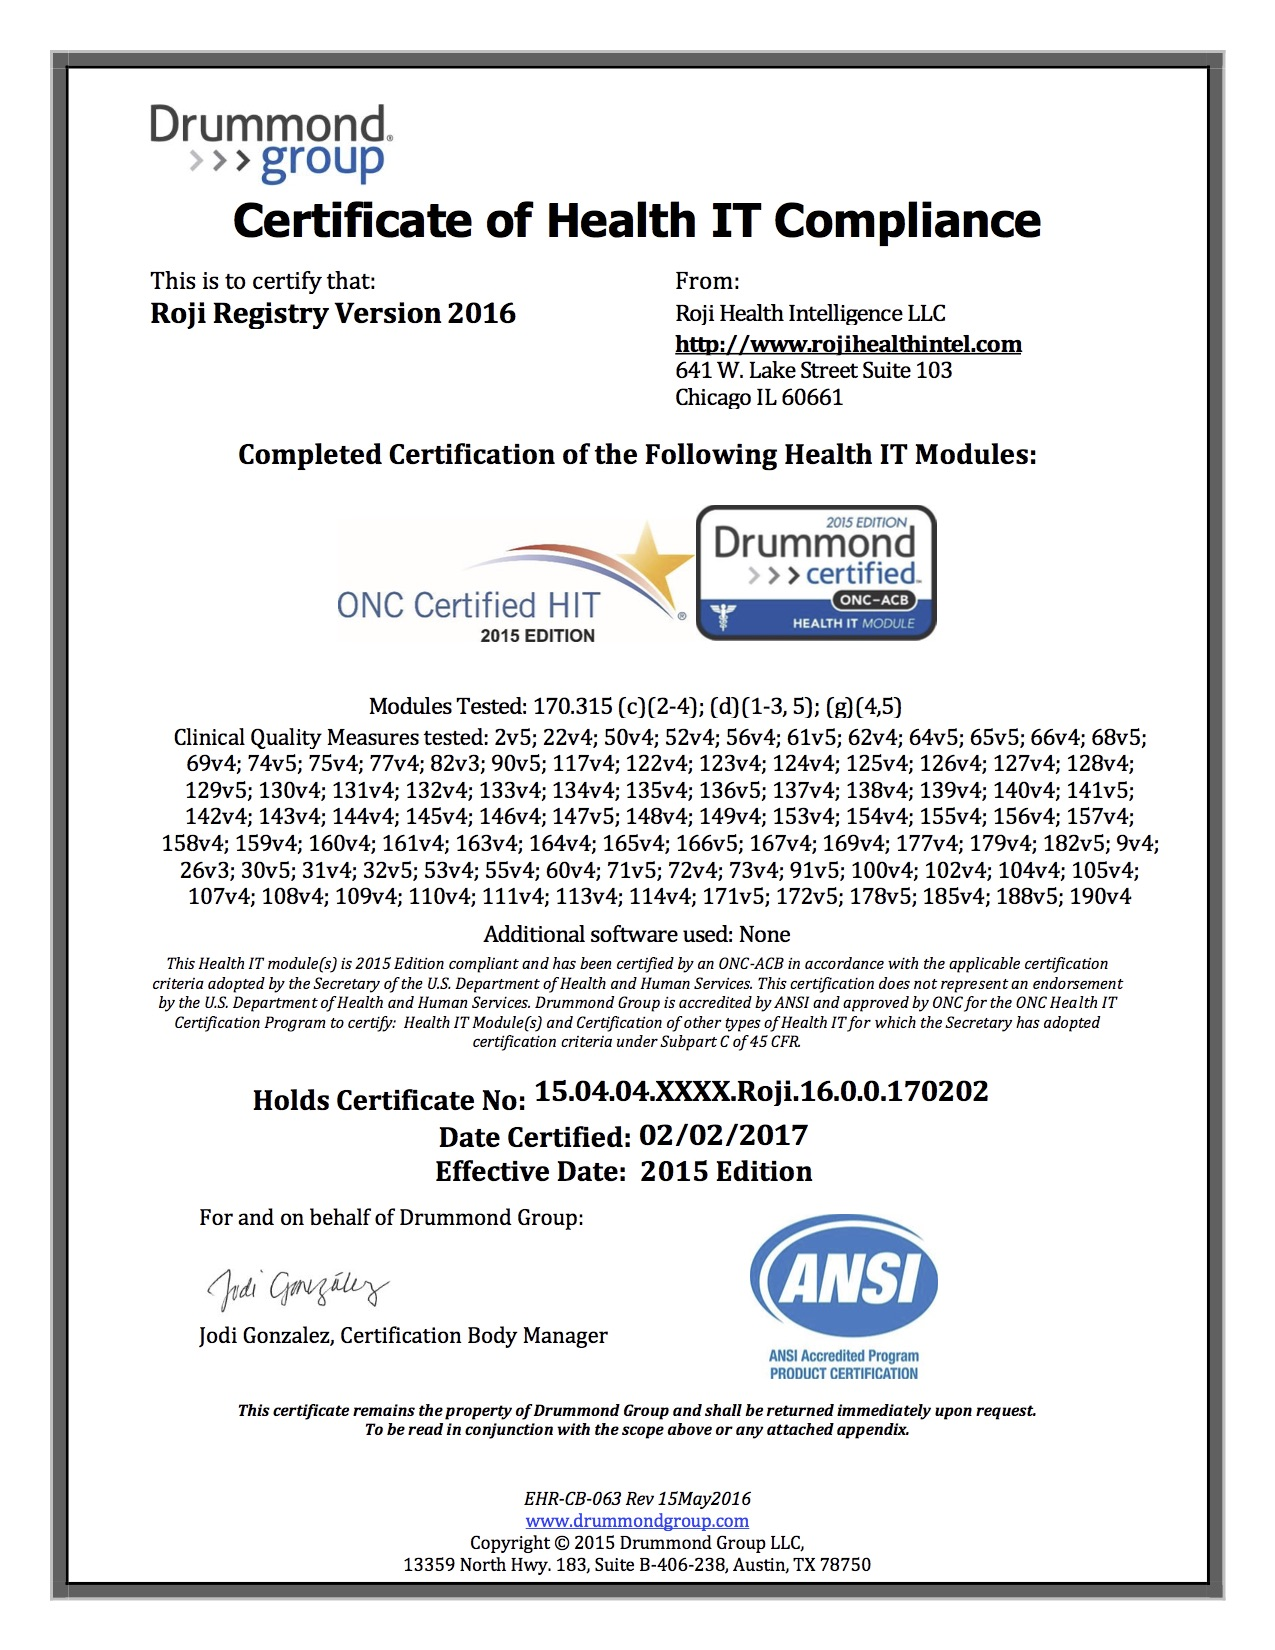 Roji Registry Onc Health It Certification Roji Health Intelligence